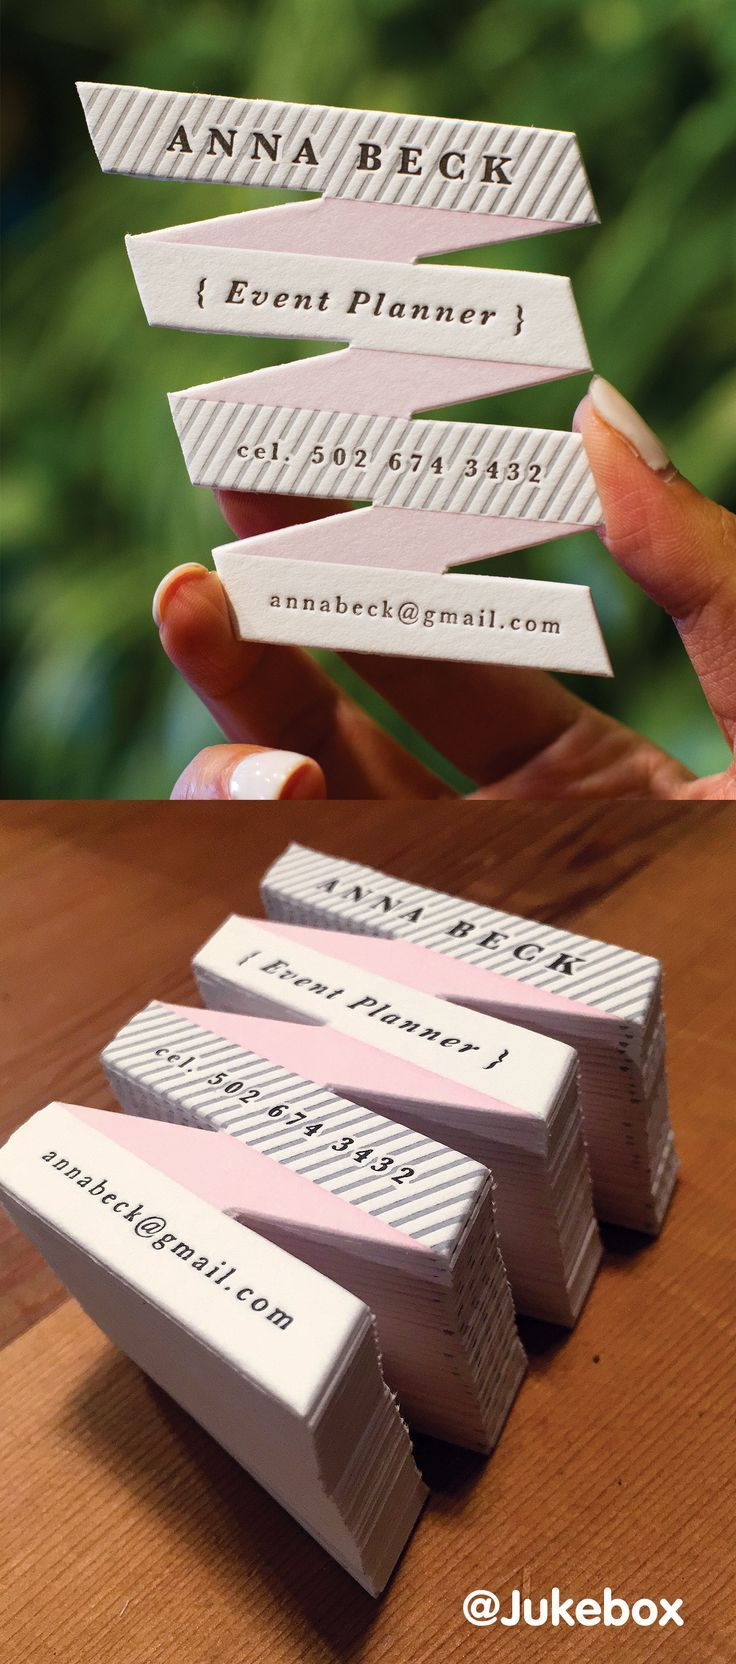 Pin by Alex Lemon on personal identity | Pinterest | Shaped cards ...